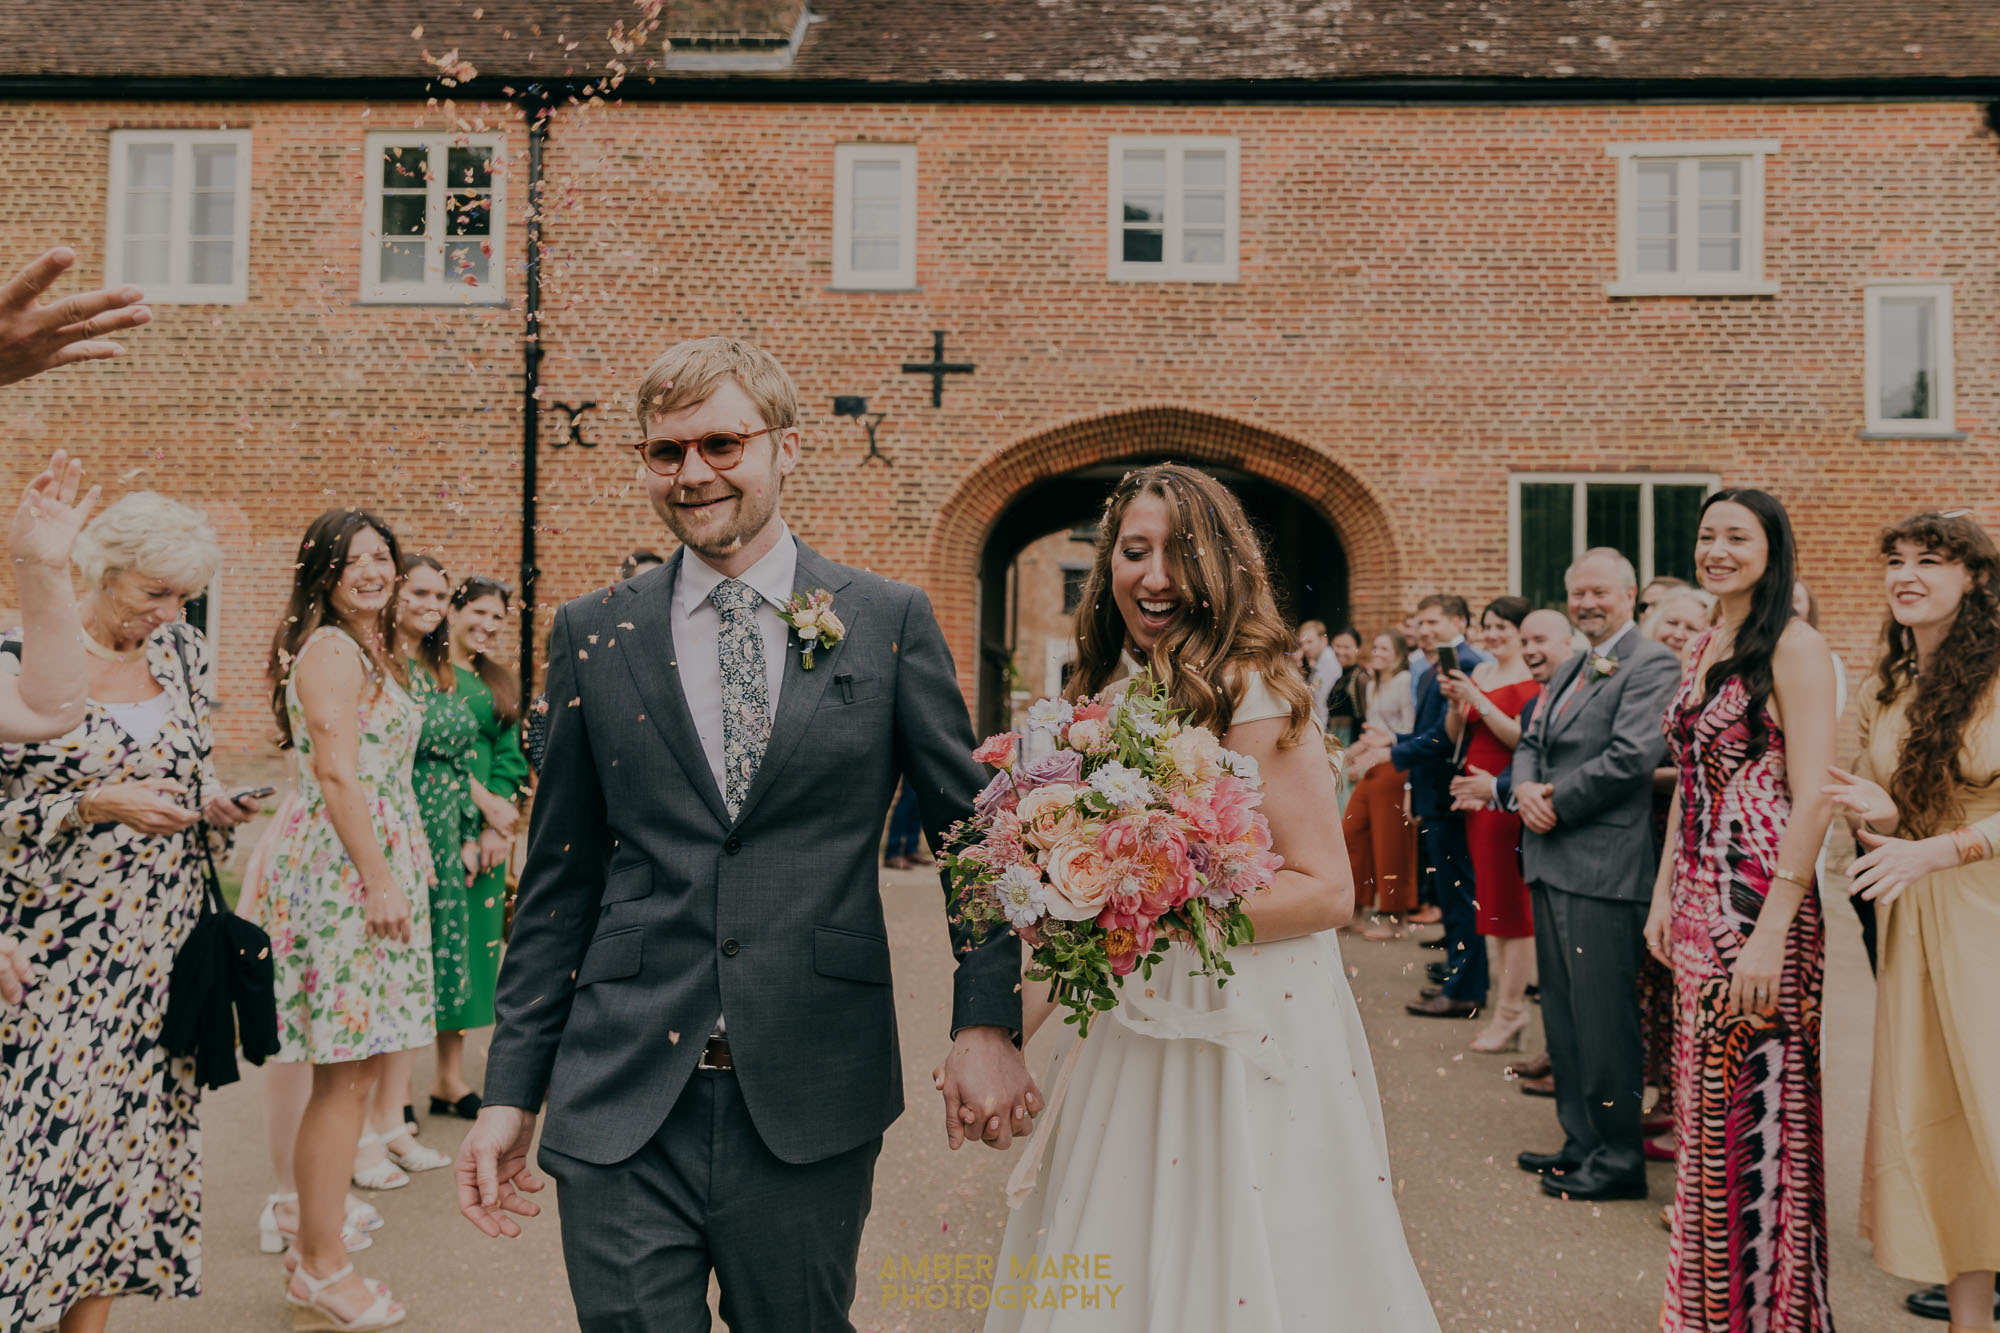 Joyful guests throw confetti on bride and groom at Fulham Palace wedding